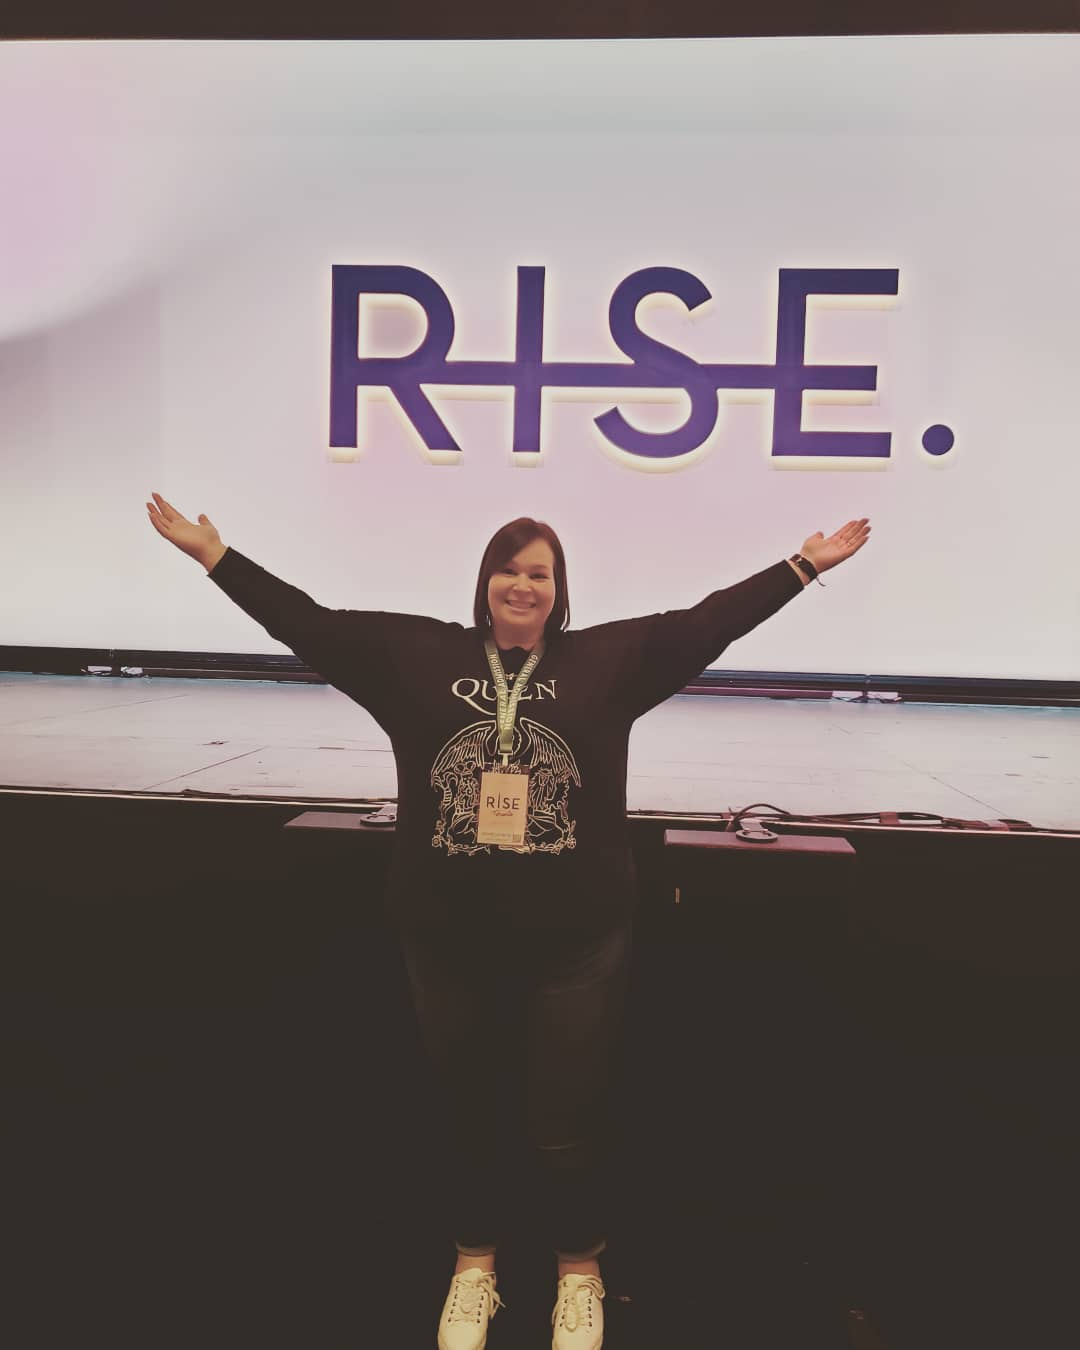 Michelle shares knowledge from the Rise Conference